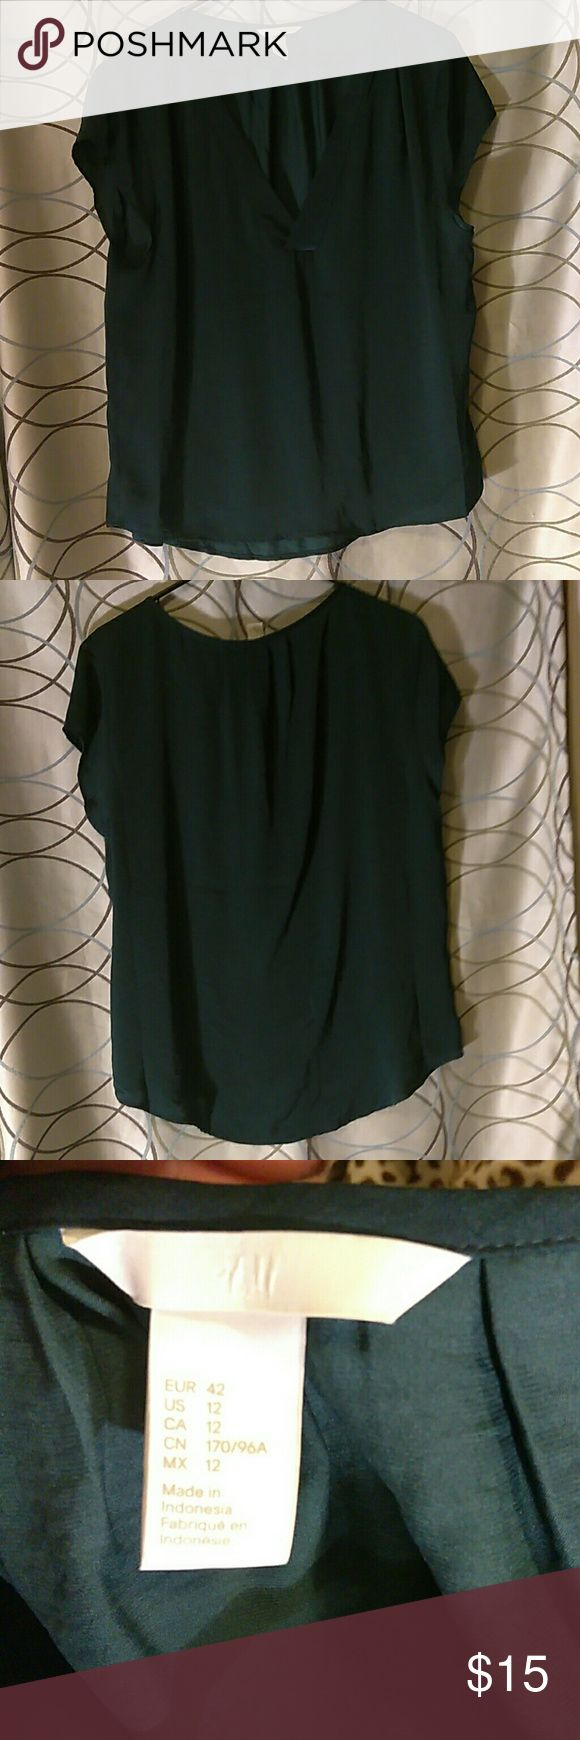 H&M Hunter Green Short Sleeve Top 100% polyester v-neck short sleeve top. Worn once. In excellent condition. Can wear with a pair of jeans or dress up. Light weight and comfortable. H&M Tops Blouses